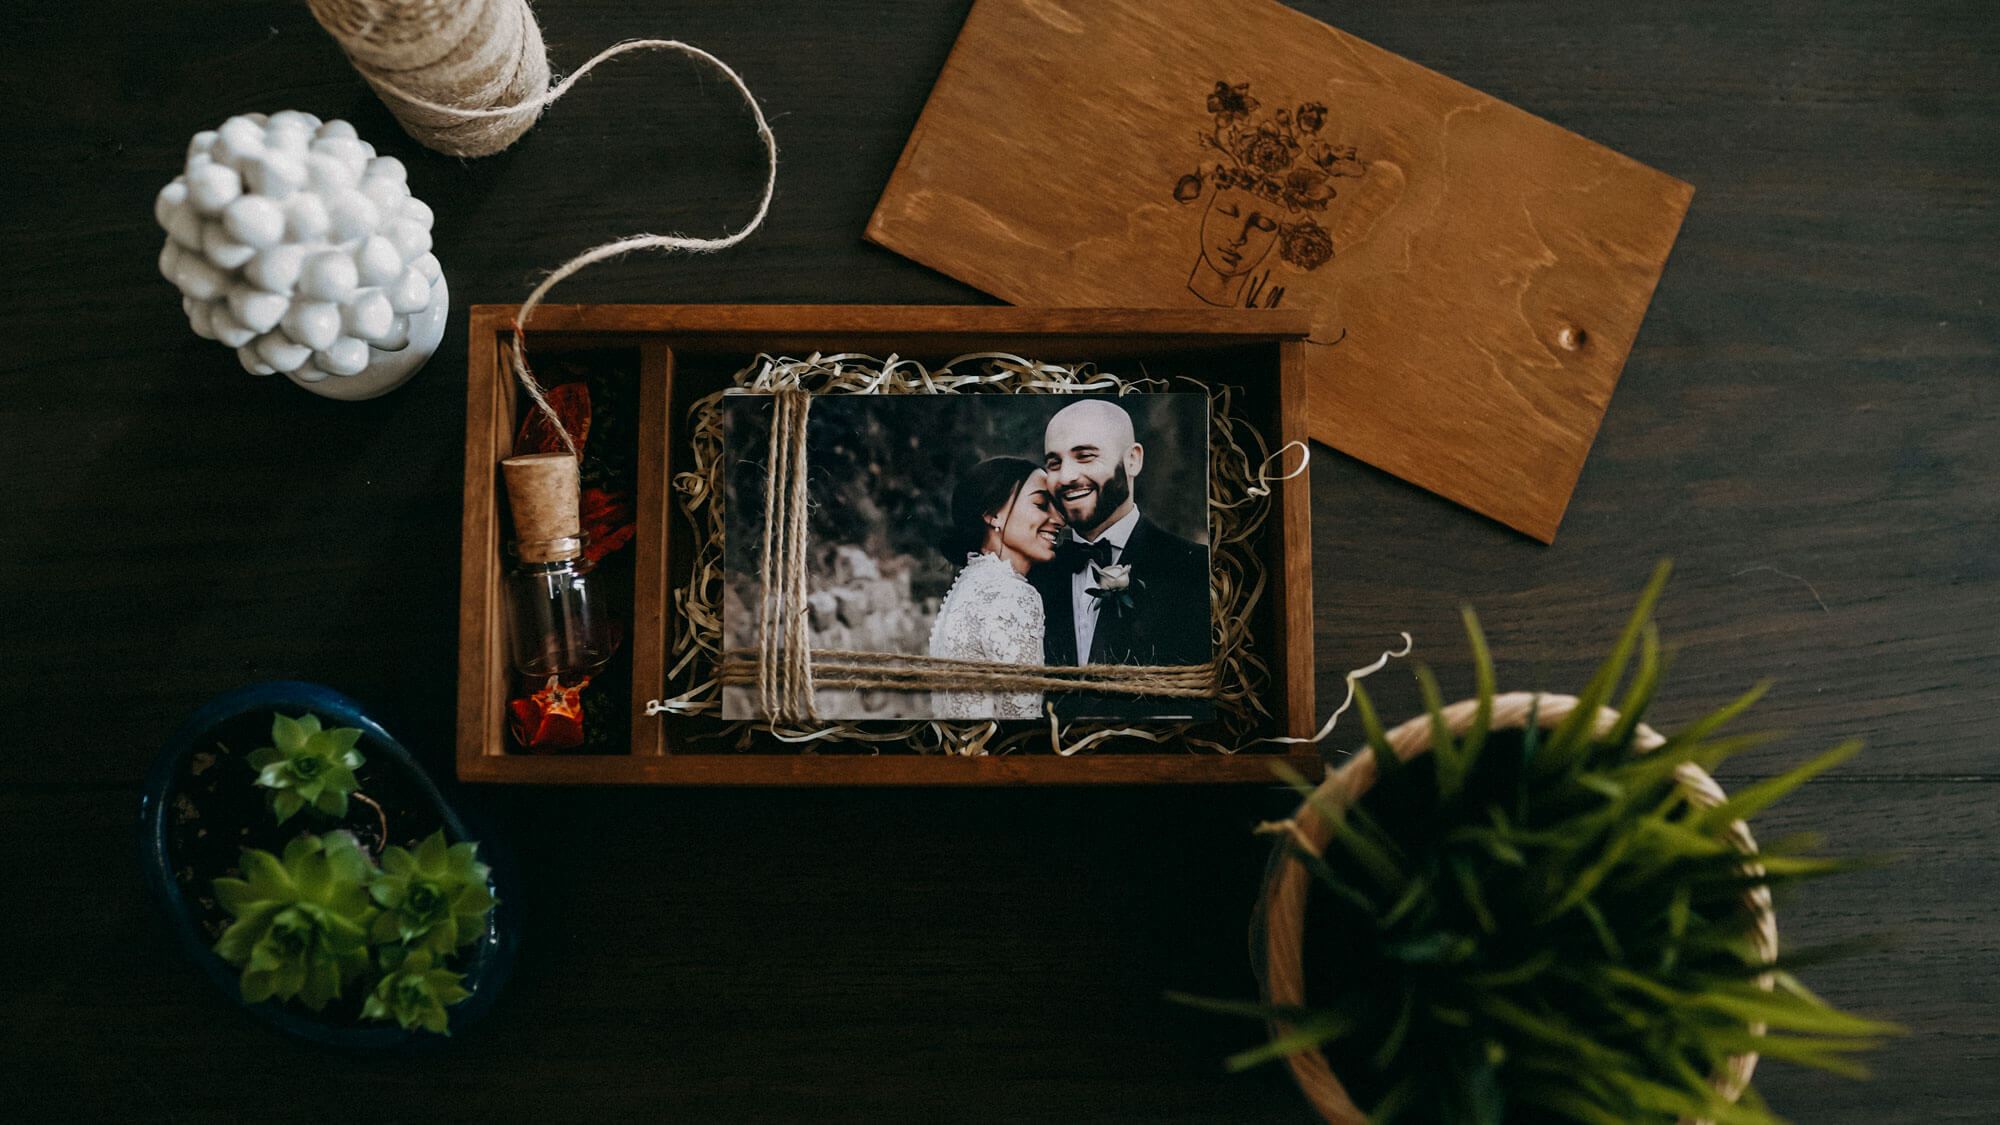 Luxury Packaging for Wedding Video Films. ValloneFilms: We capture, express and create unique wedding films of your authentic emotions in your important day!